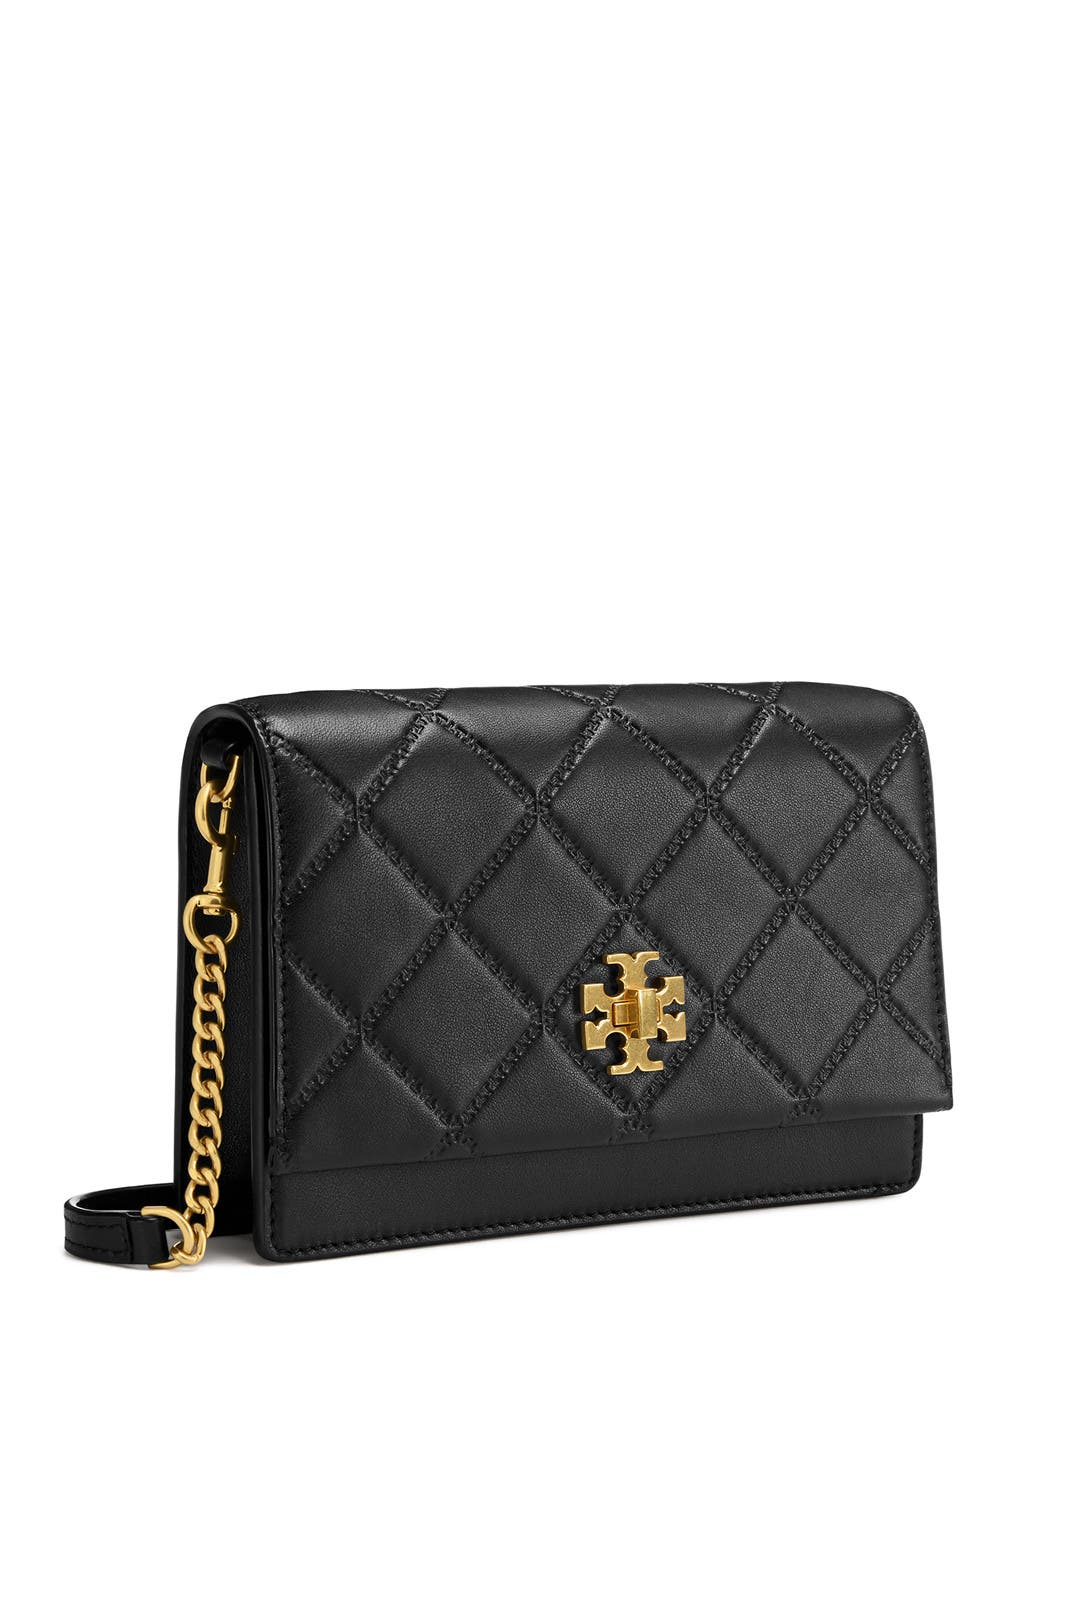 67d0ab61adf8 Tory Burch Accessories. Read Reviews. Quilted Georgia Mini Bag